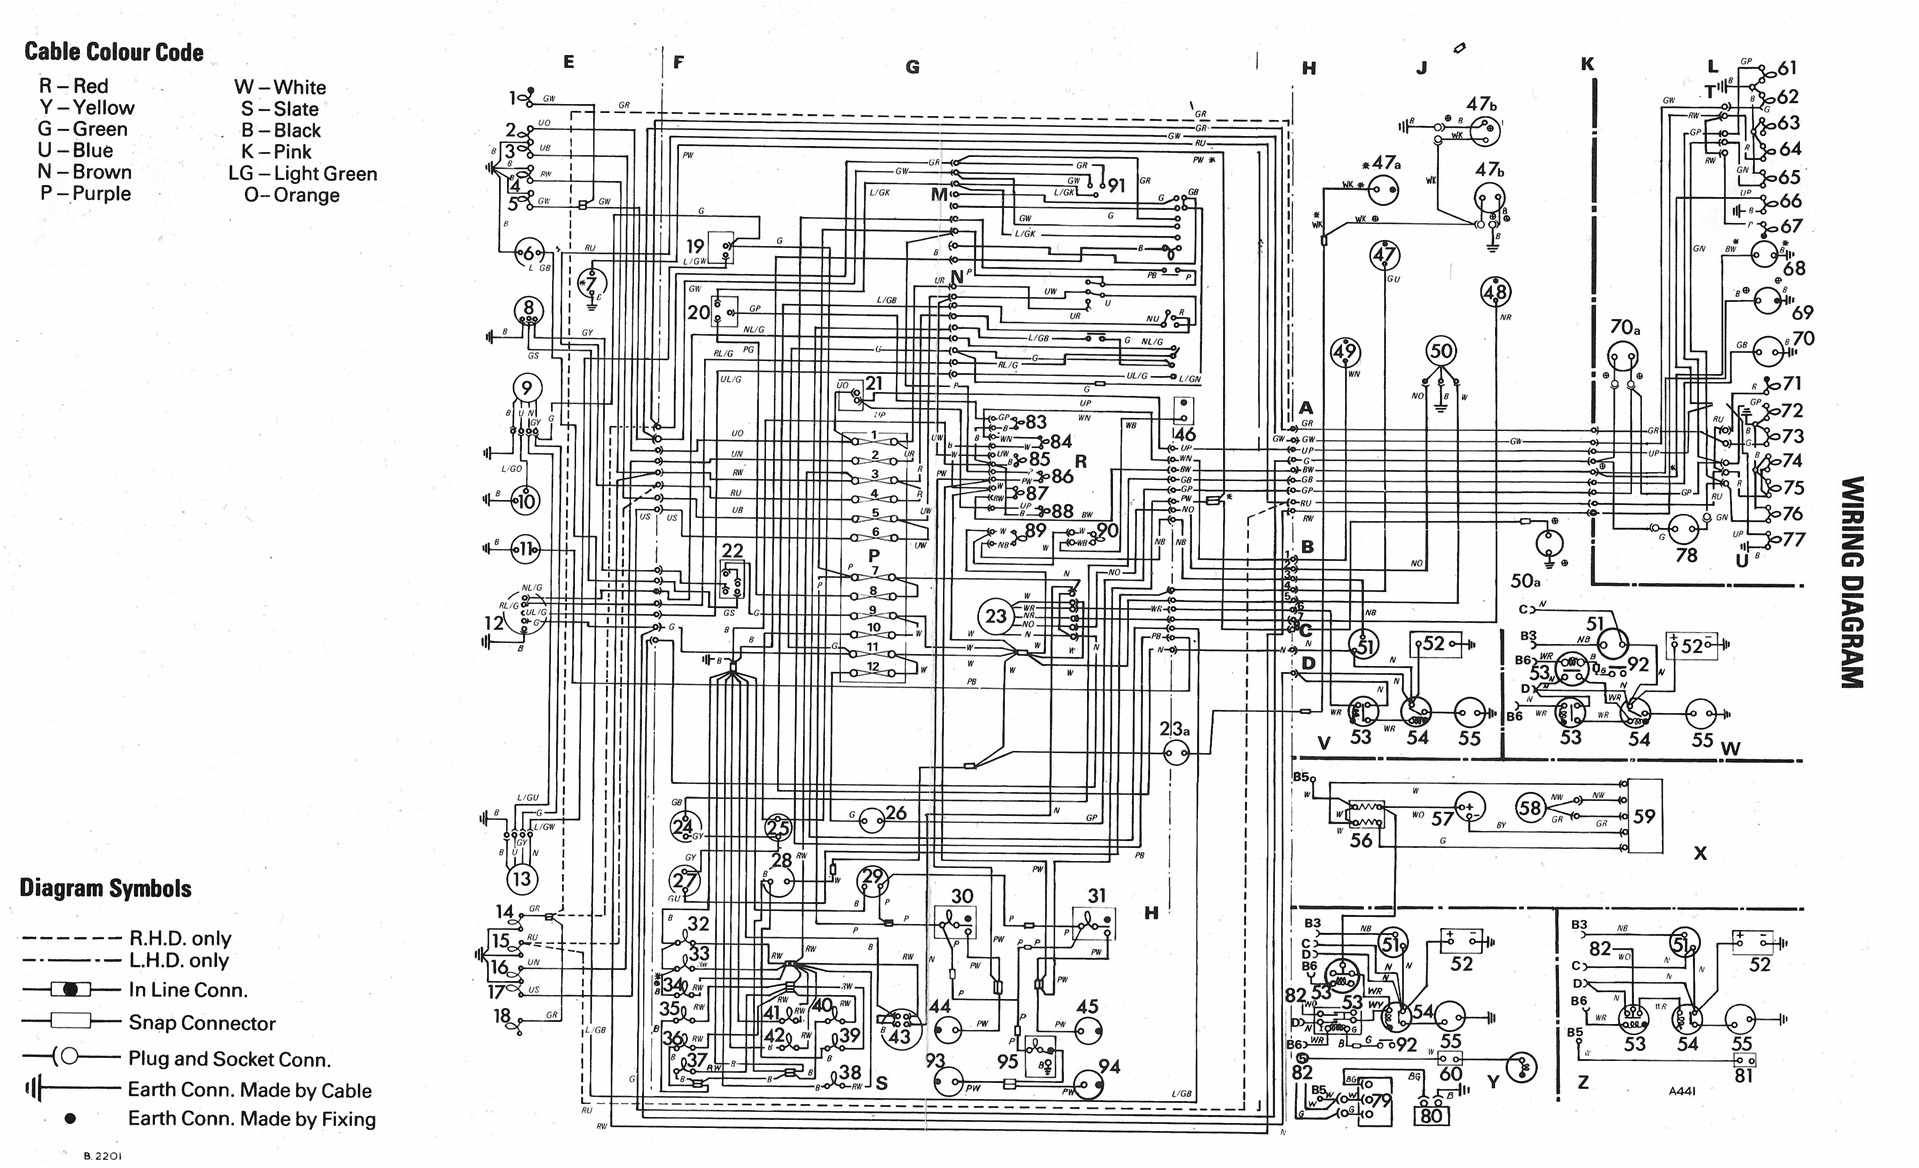 P 0900c15280067210 also Subaru Wiring Diagrams further 2011 Ezgo Rxv Wiring Diagram moreover 2014 Subaru Impreza Fuse Box additionally Ford E350 Wiring Diagram. on 2005 subaru impreza wiring diagrams